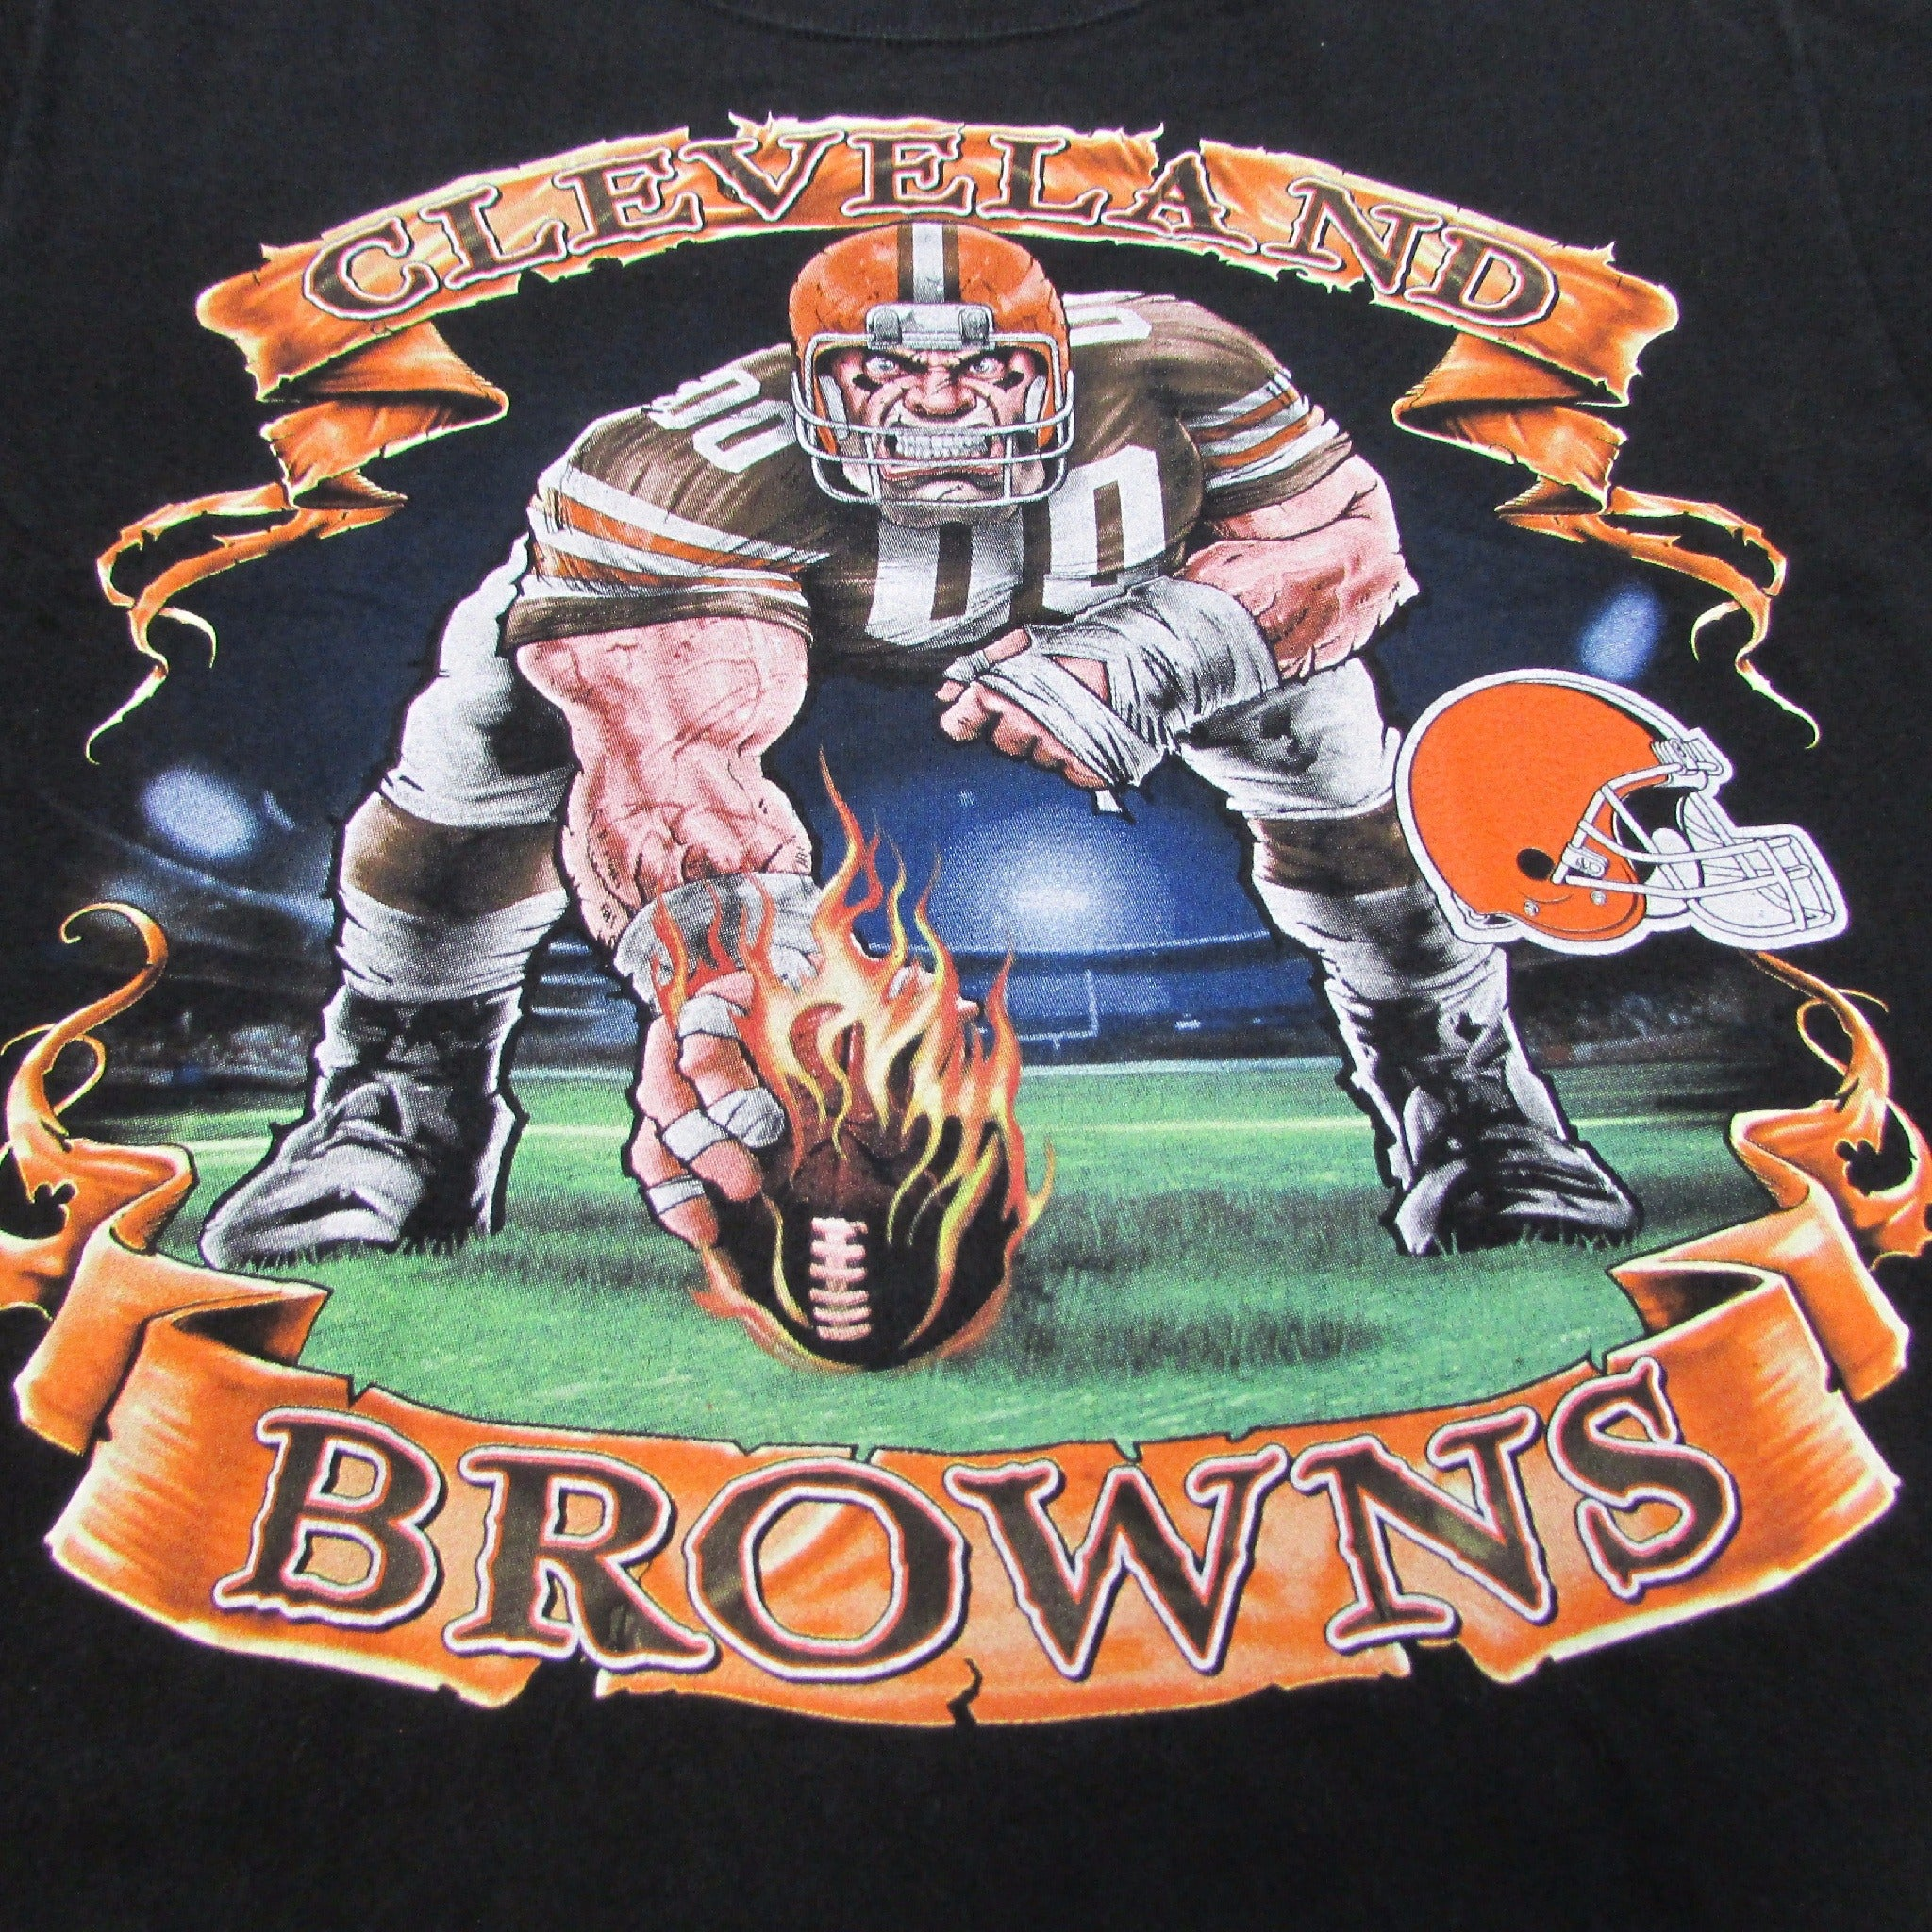 Cleveland Browns Monday Night Football Vintage T-Shirt Sz L